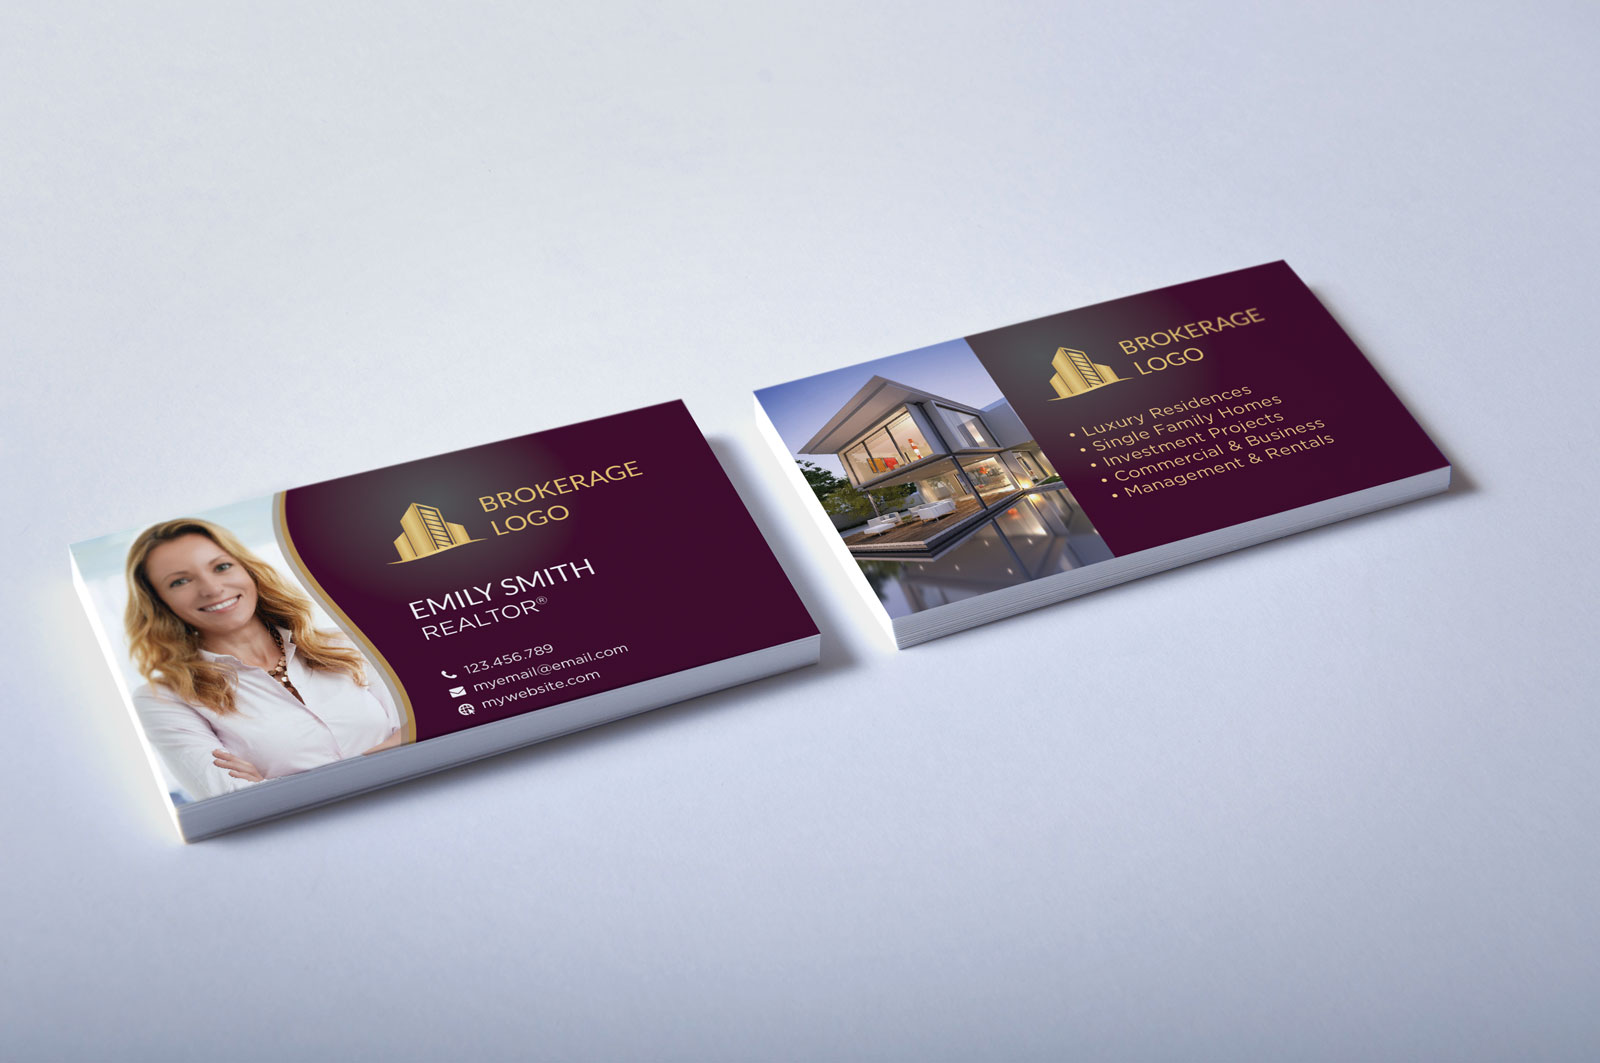 Free Real Estate Agent Business Card Download #2